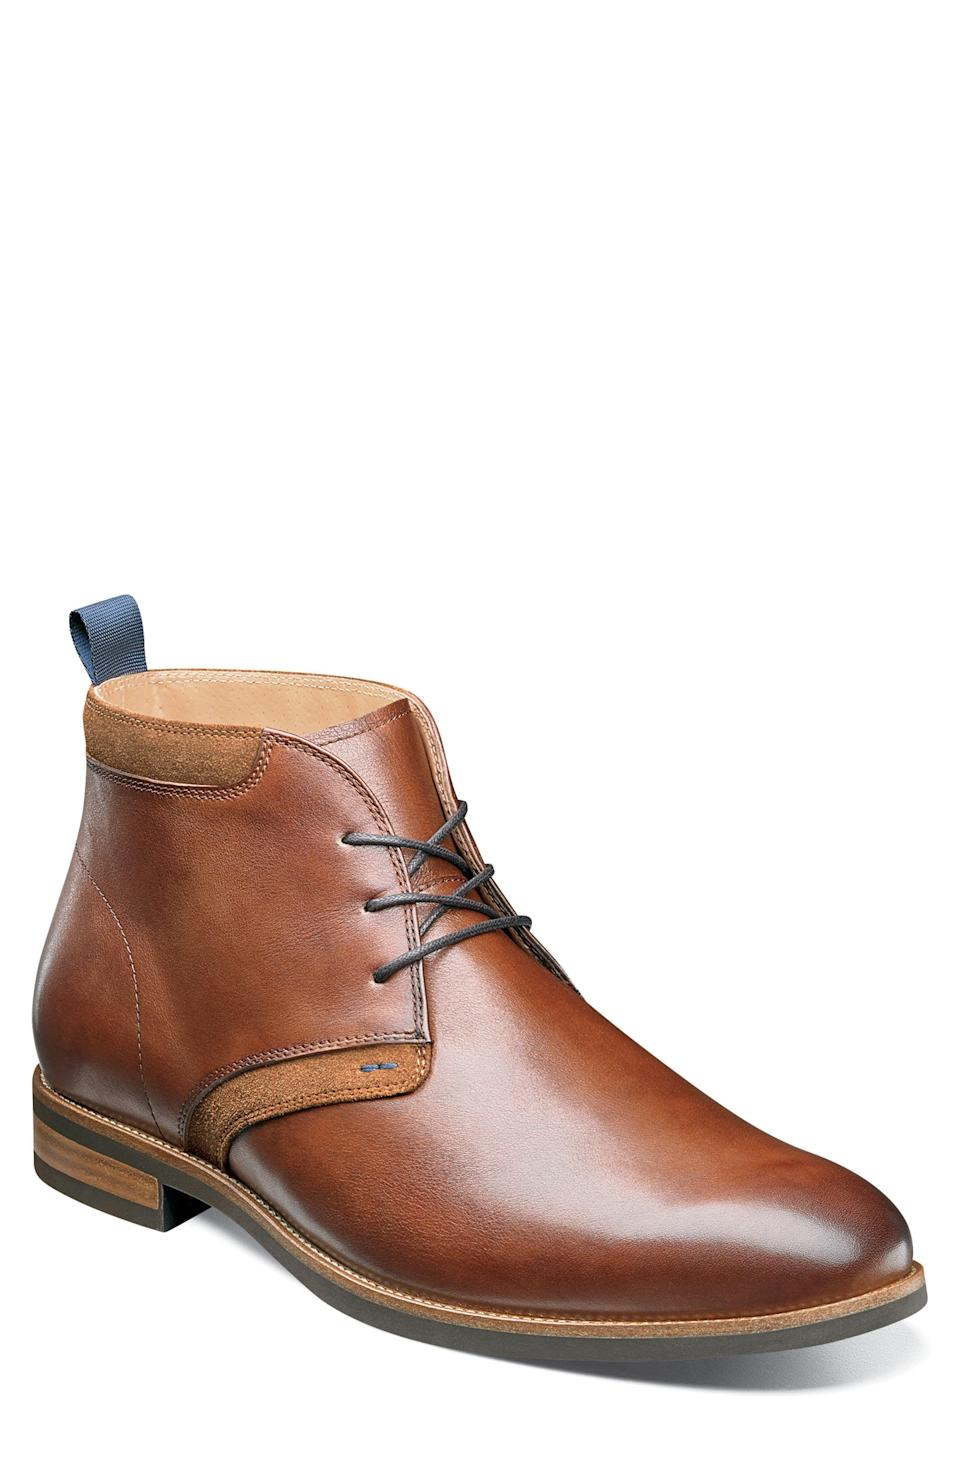 """<p><strong>FLORSHEIM</strong></p><p>nordstrom.com</p><p><strong>$124.95</strong></p><p><a href=""""https://go.redirectingat.com?id=74968X1596630&url=https%3A%2F%2Fshop.nordstrom.com%2Fs%2Fflorsheim-uptown-chukka-boot-men%2F5146108&sref=https%3A%2F%2Fwww.womenshealthmag.com%2Flife%2Fg33501922%2Funique-gift-ideas-for-men%2F"""" rel=""""nofollow noopener"""" target=""""_blank"""" data-ylk=""""slk:Shop Now"""" class=""""link rapid-noclick-resp"""">Shop Now</a></p><p>These boots are designed to last, so the lucky recipient will think of you for many years to come. Textured leather, Comfortech traction sole and Ortholite cushioning makes these boots comfy and protected from the elements. </p>"""